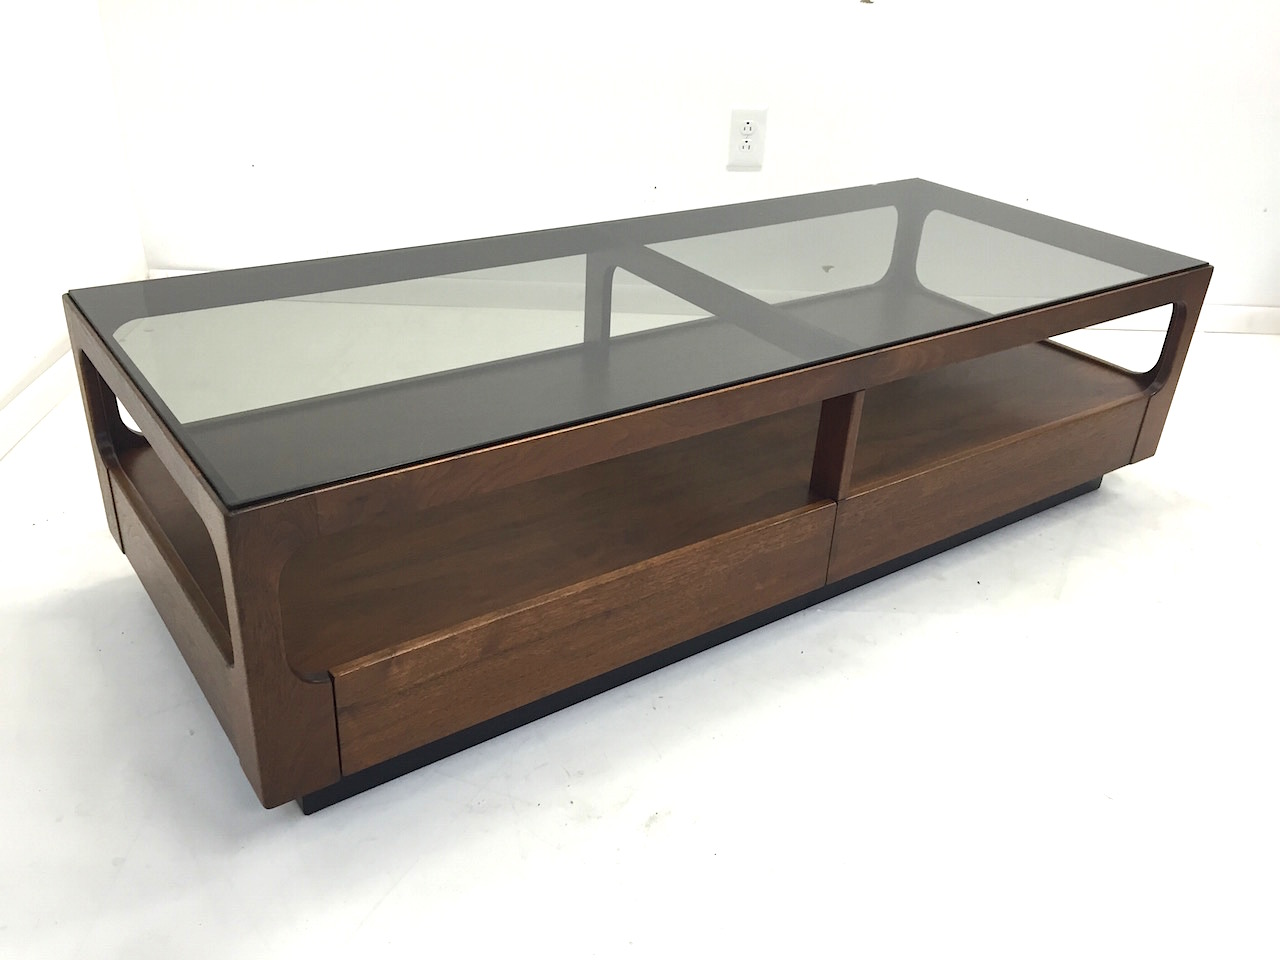 Walnut Smoked Glass Coffee Table By Brown Saltman District Modern 20th Century Furniture